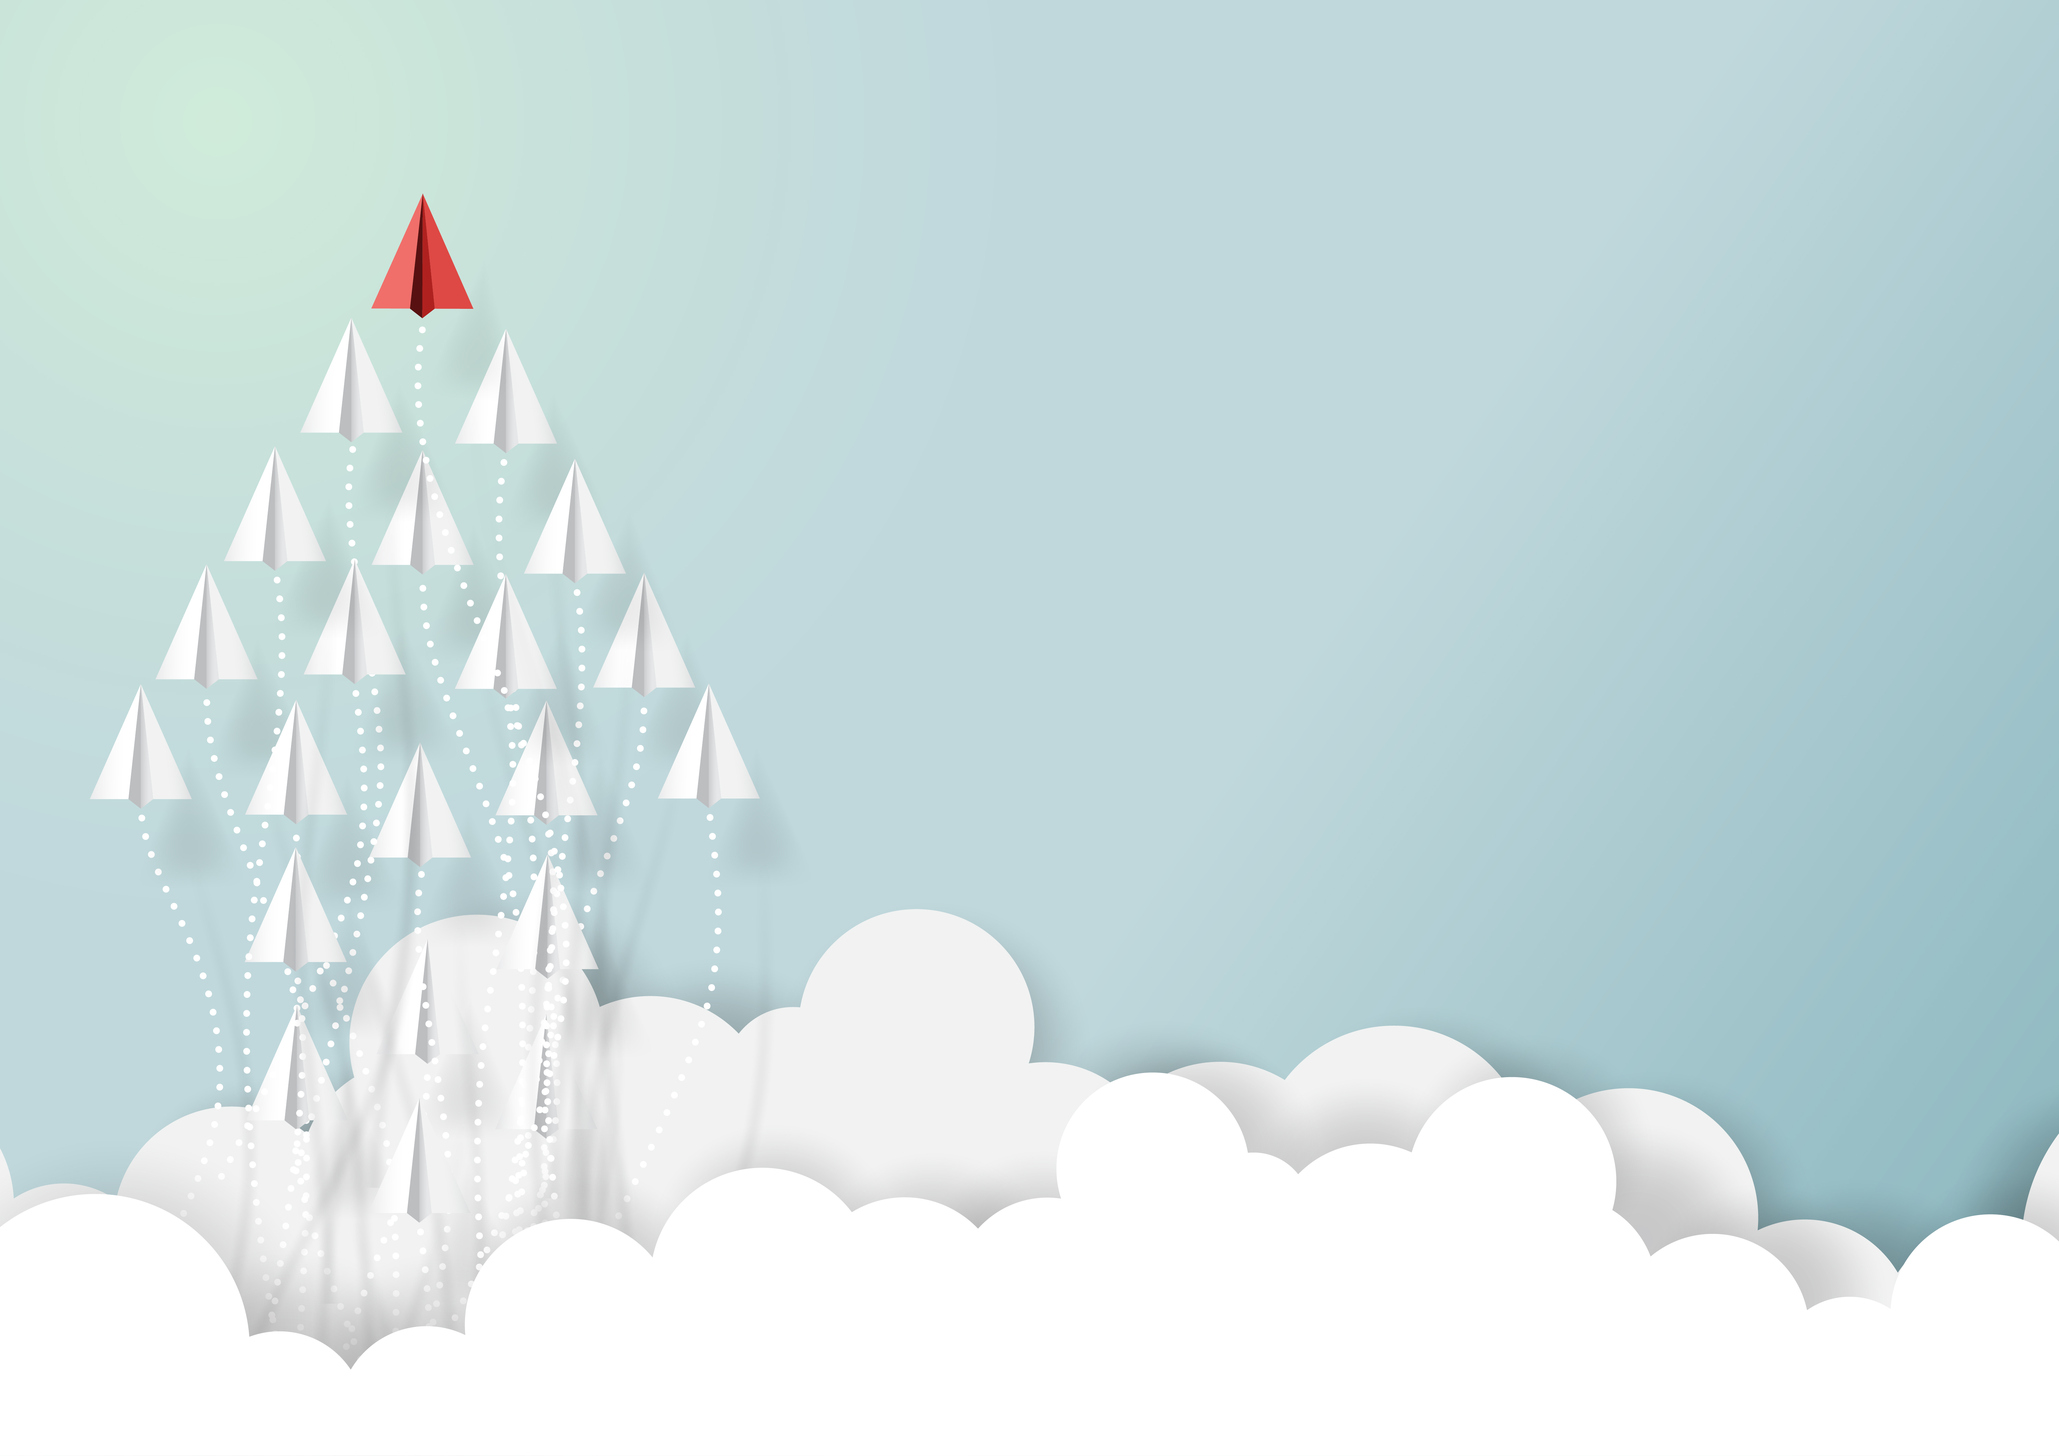 Cloud services are becoming more popular as companies look to outsource various parts of their business